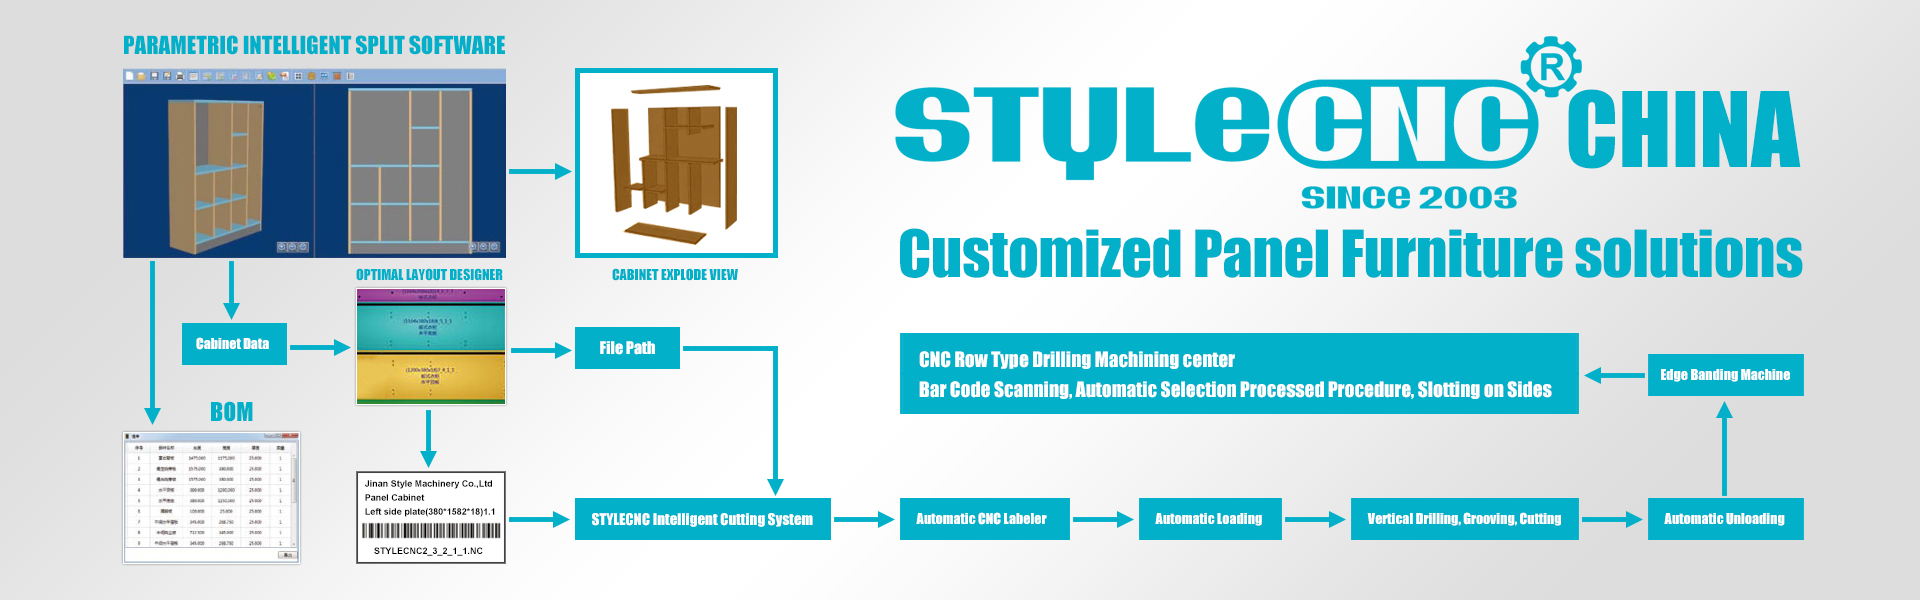 Customized panel furniture solutions